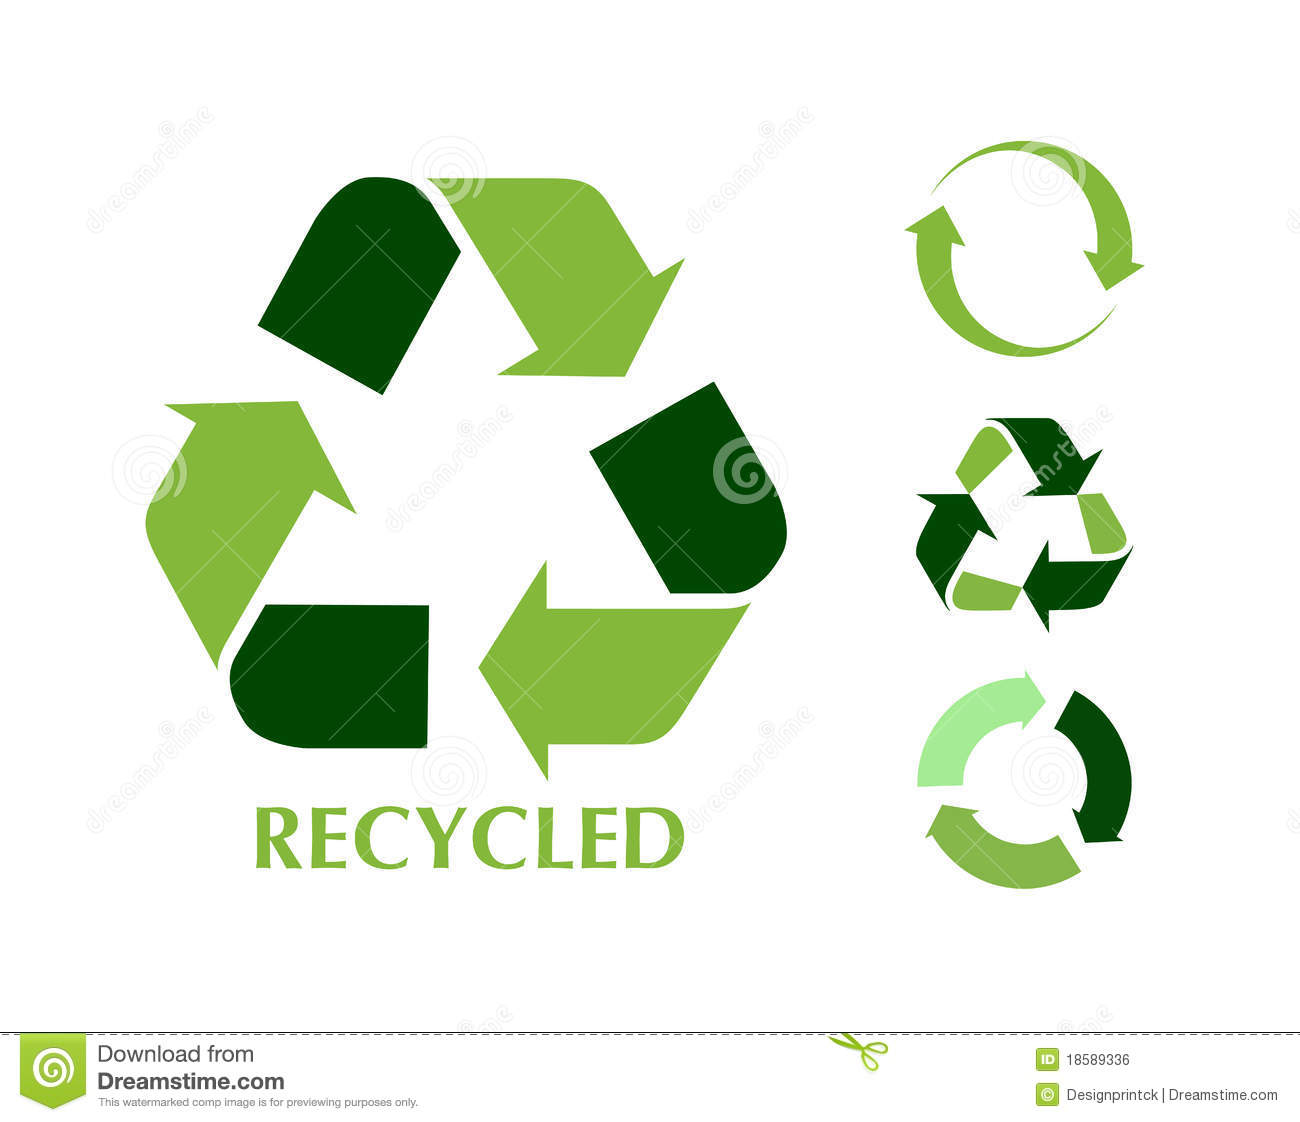 Royalty Free Stock Image Recycle Symbol Image18589336 on design floor plan symbol for audio